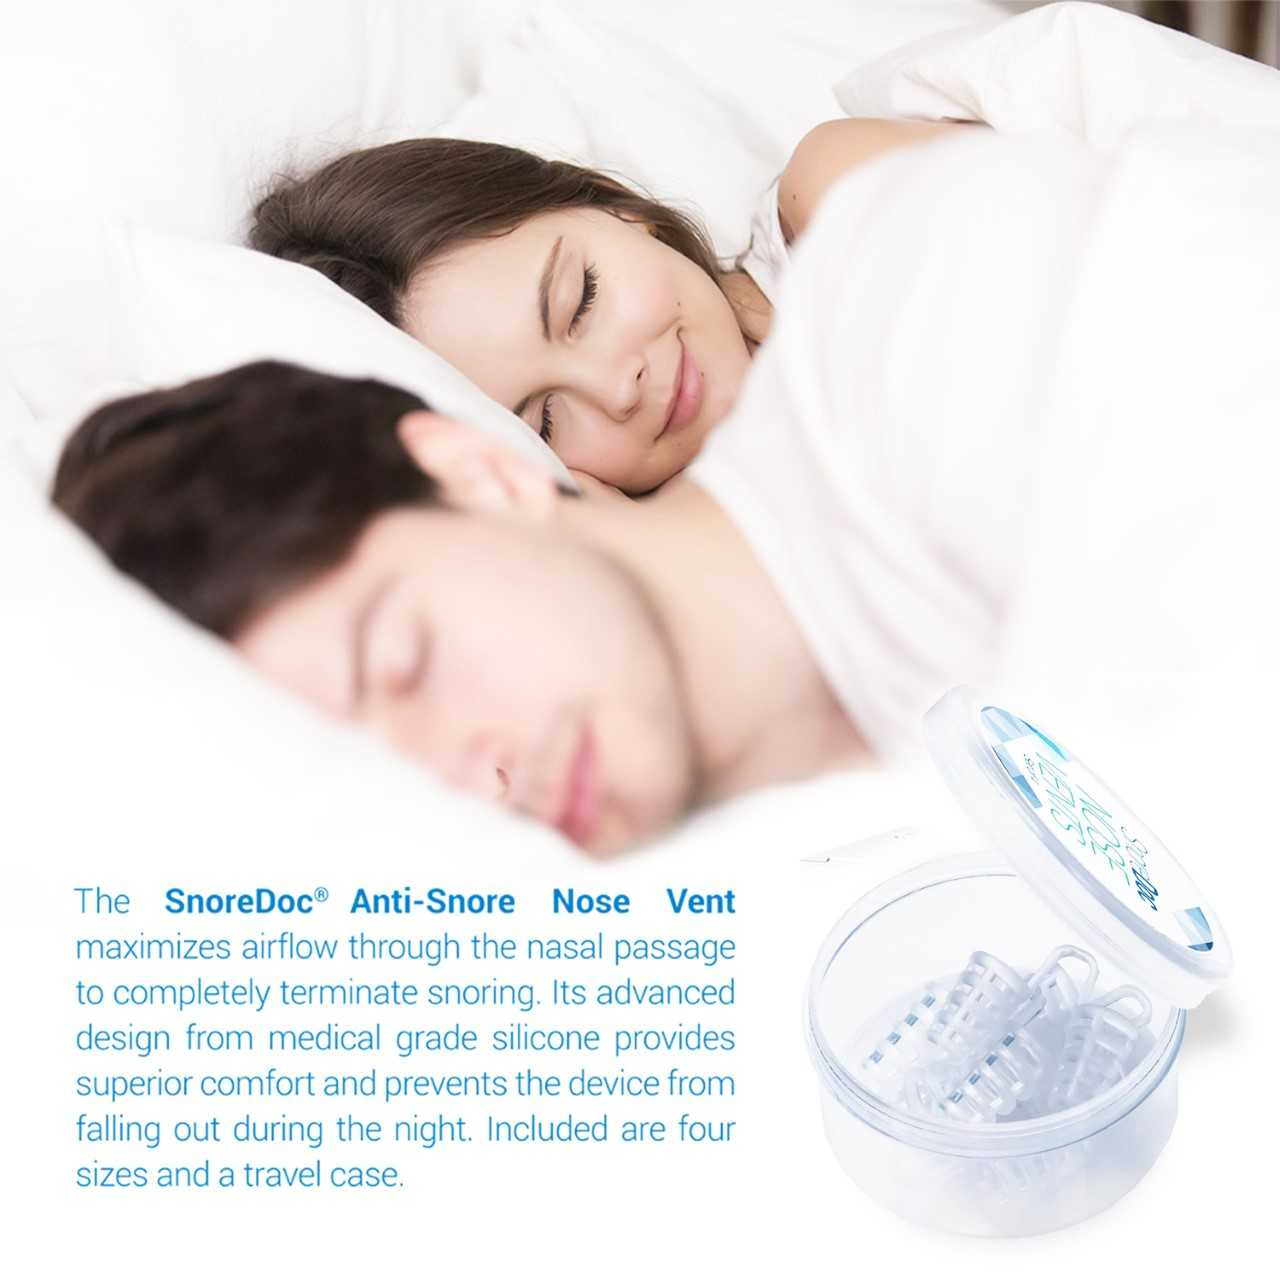 Stop Snoring Aids Anti Snoring Device Stop Snoring Nose Vents Aids Breathing